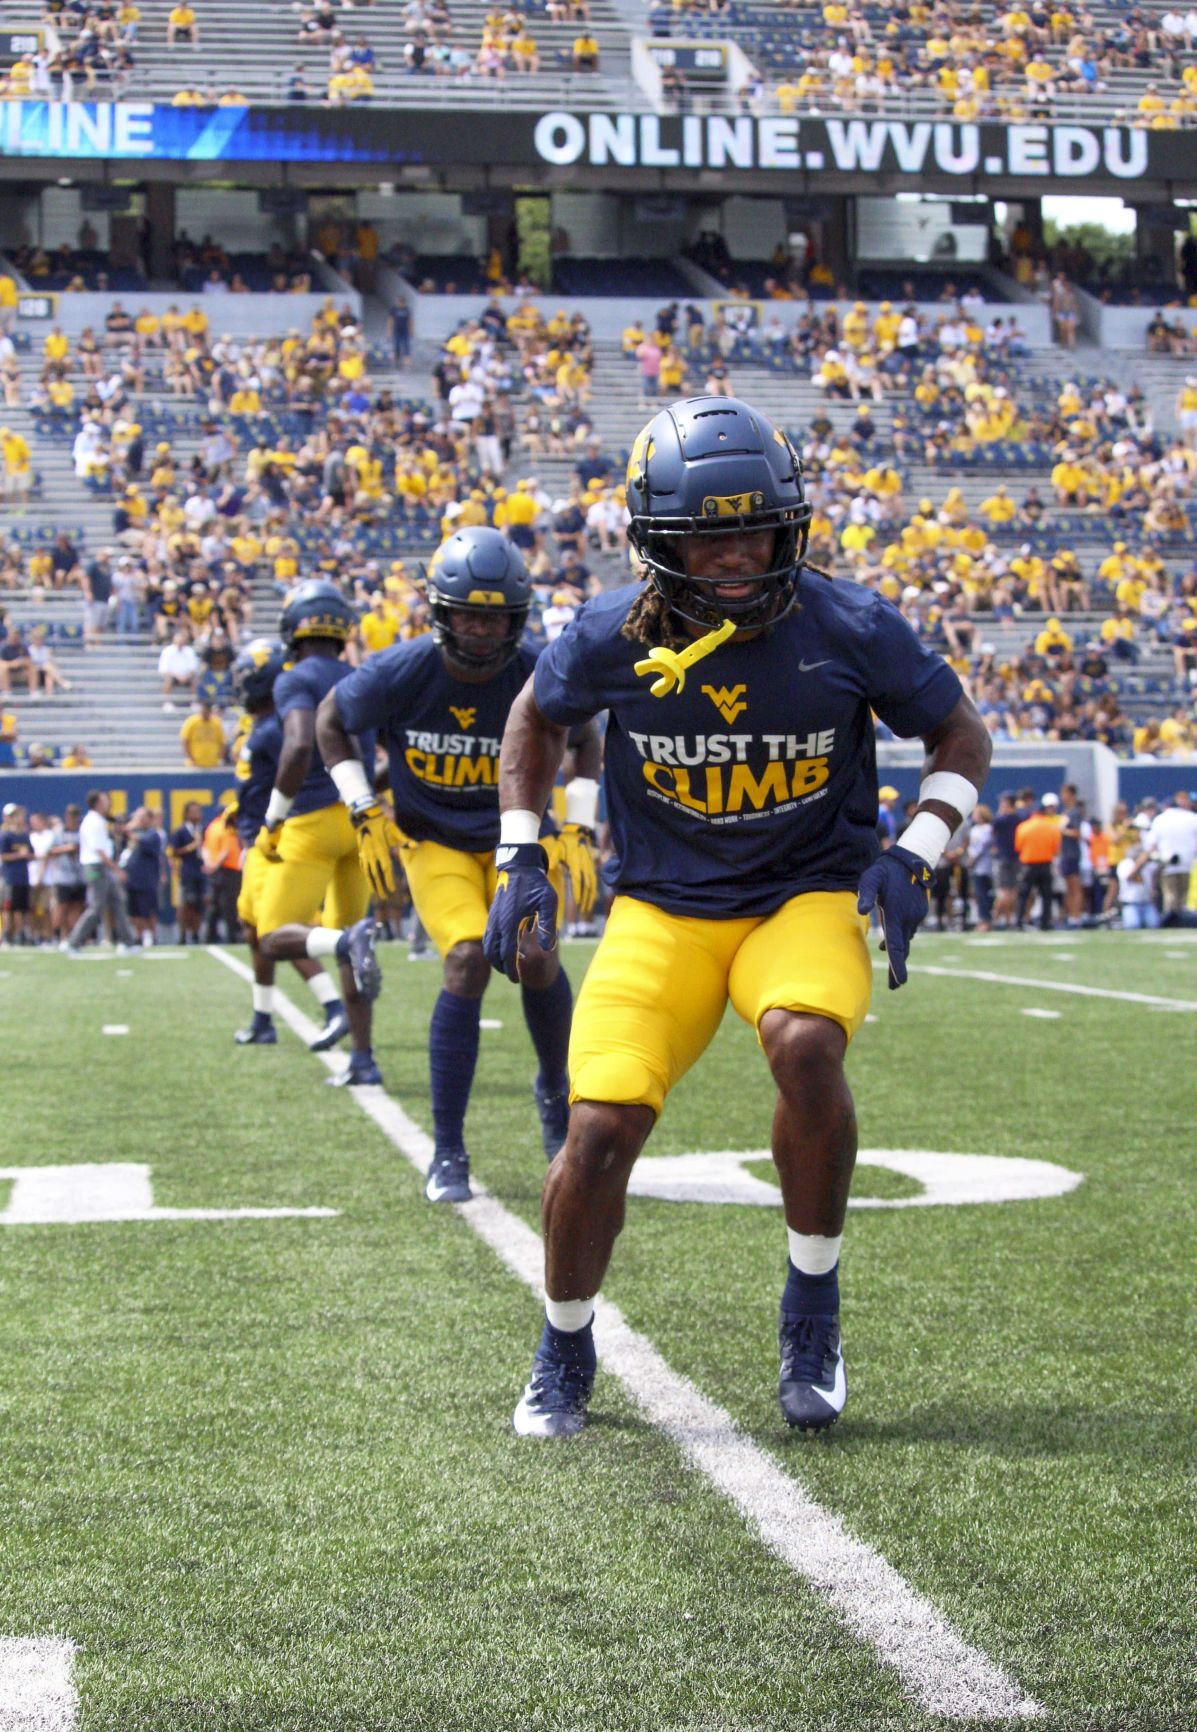 Members of the West Virginia football team go through pregame warmups.